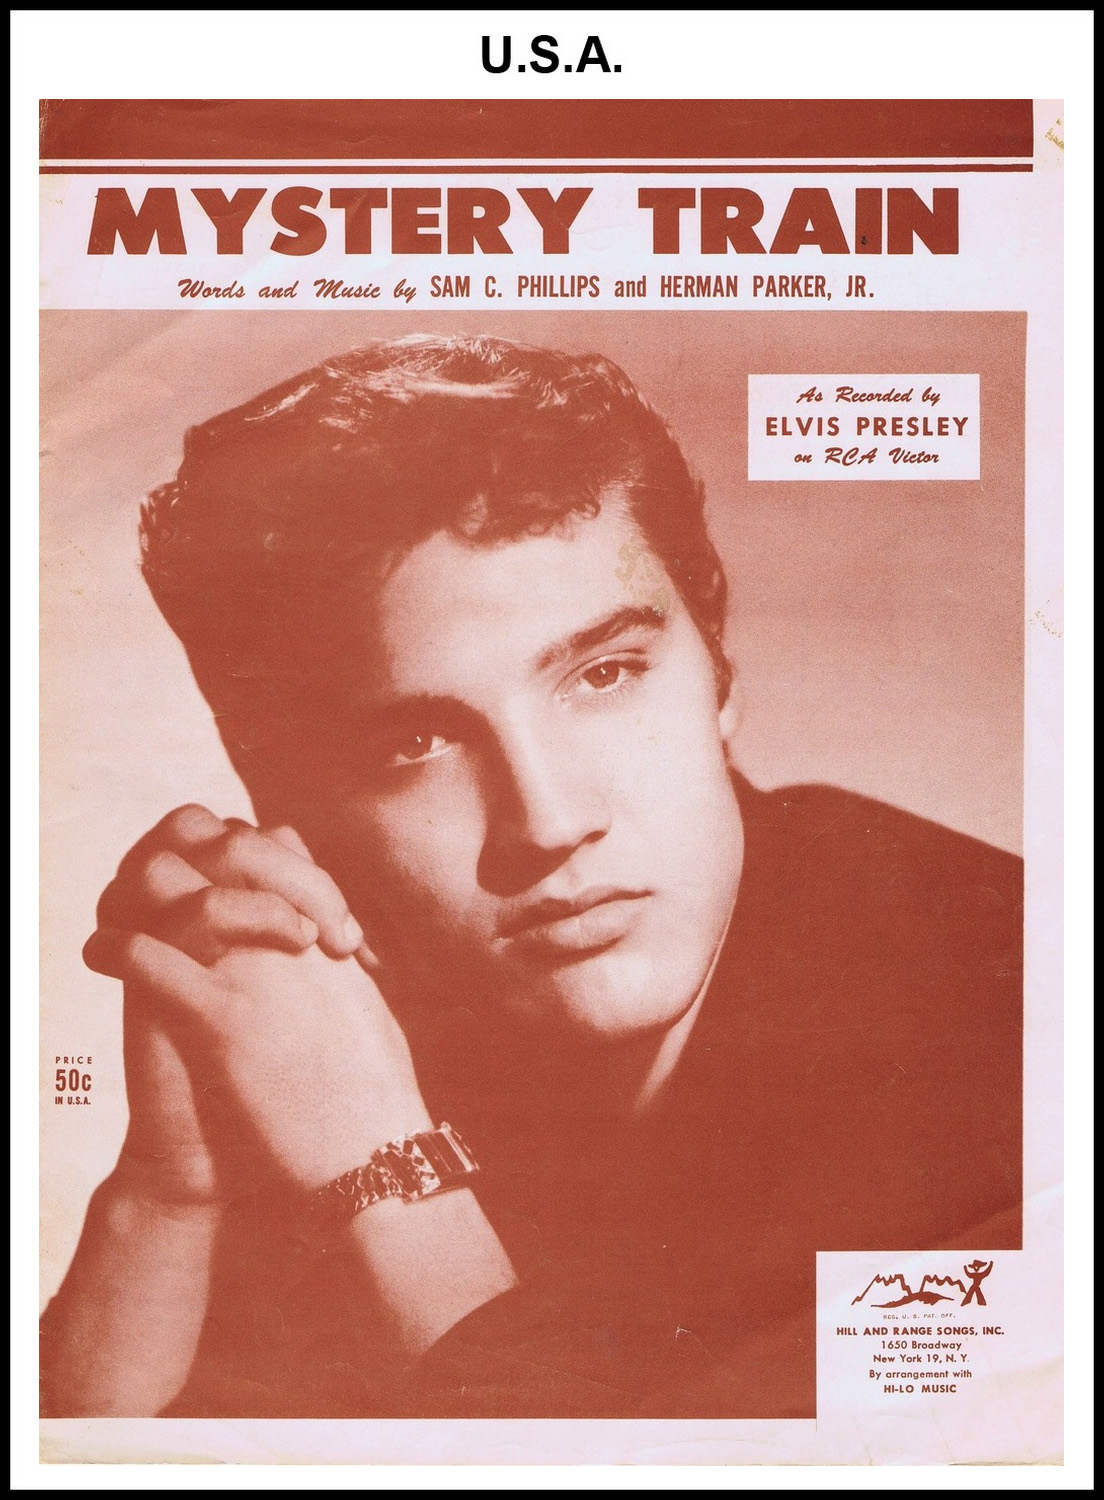 1955 - Mystery Train (USA 50c) (CHRIS GILES COLLECTION)